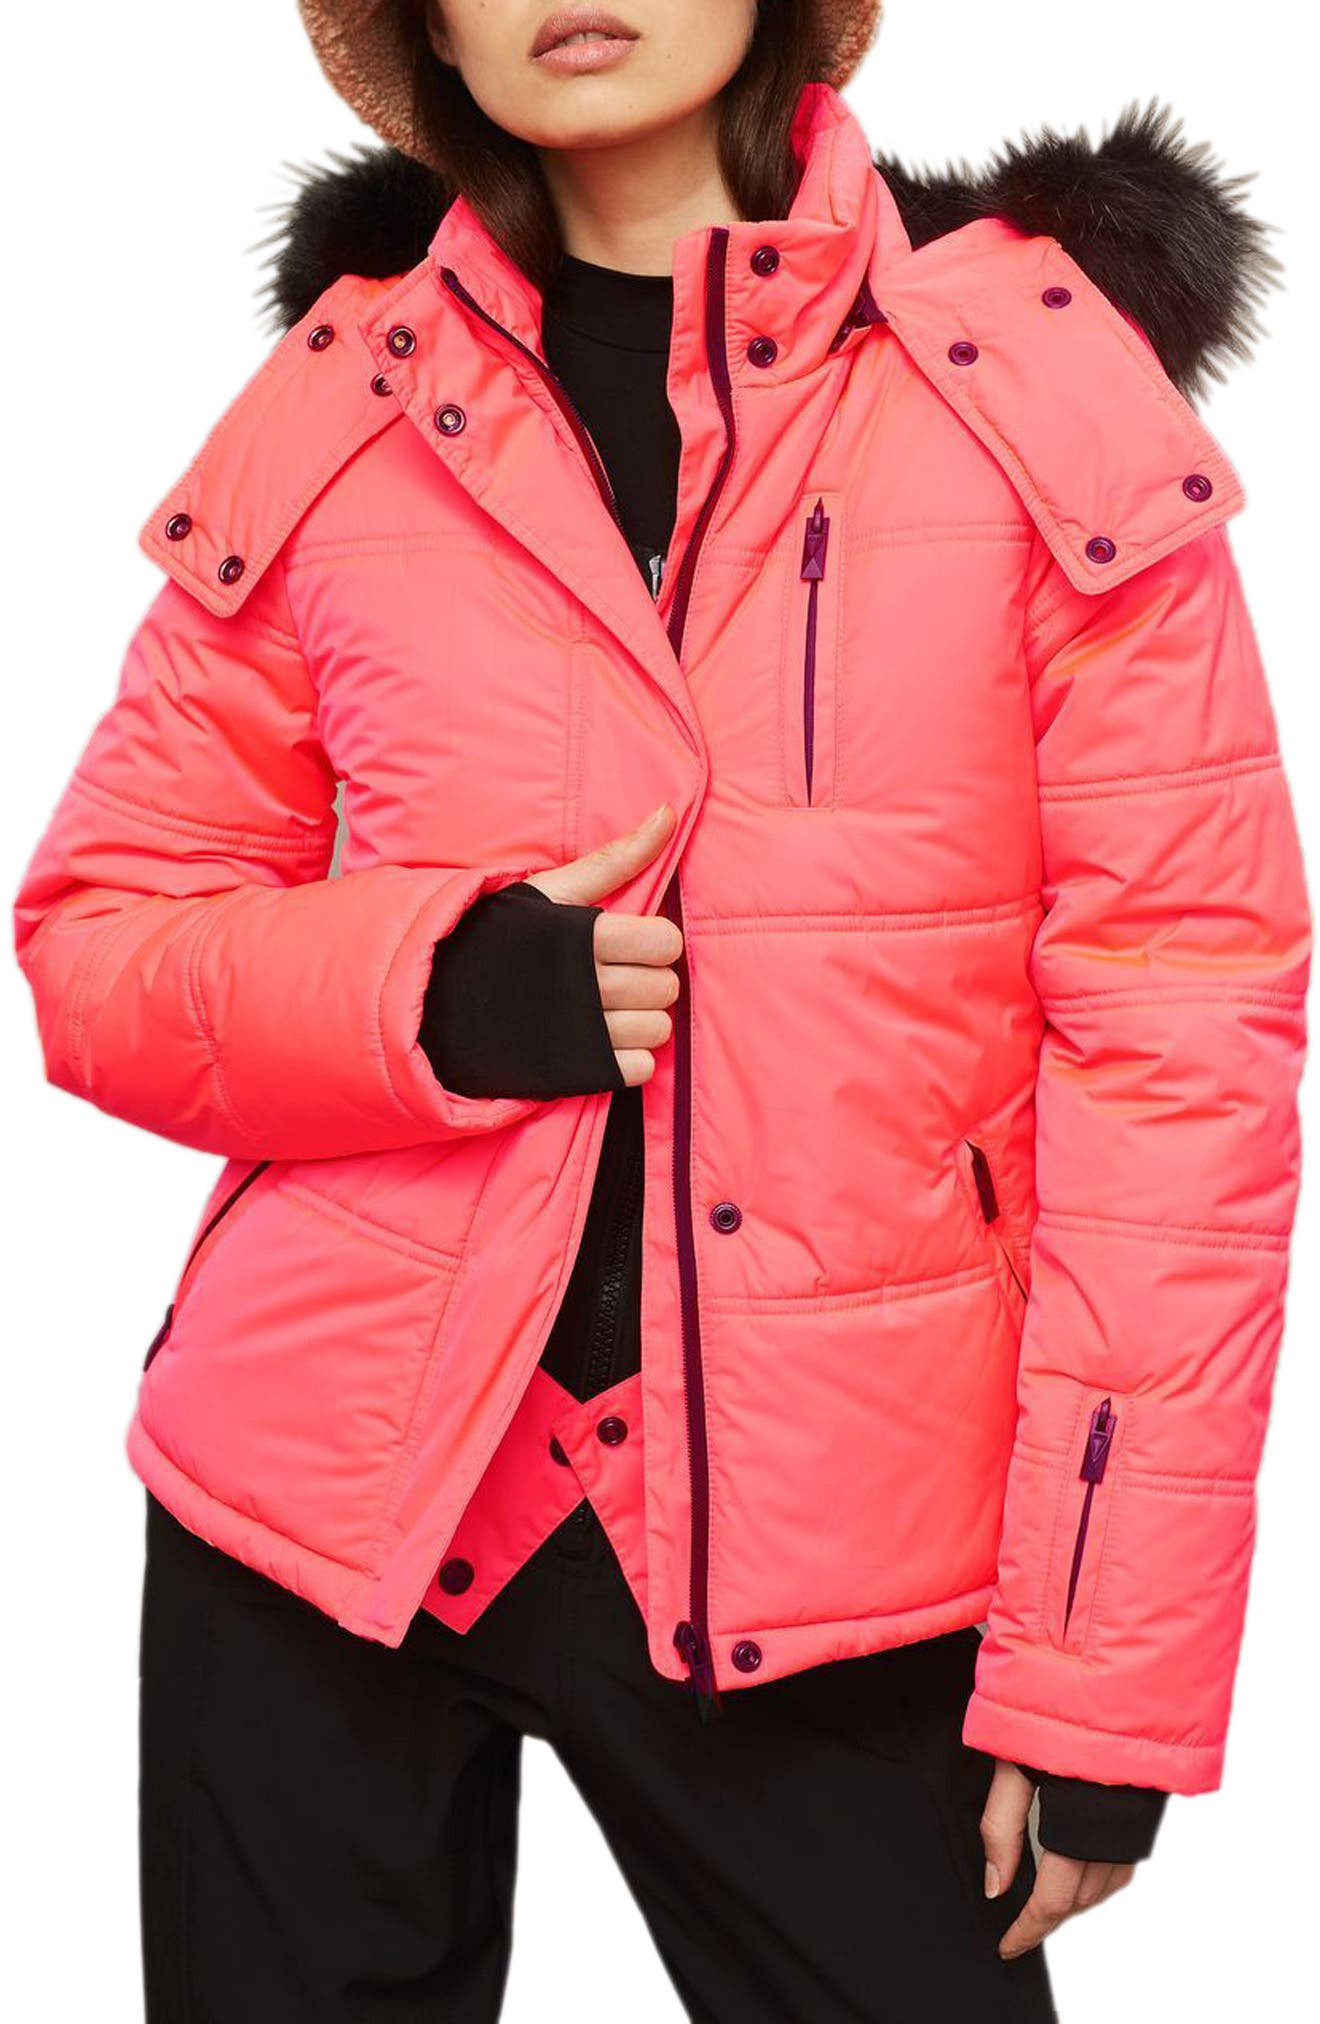 SNO Rio Faux Fur Hood Neon Puffer Jacket,                             Main thumbnail 1, color,                             Pink